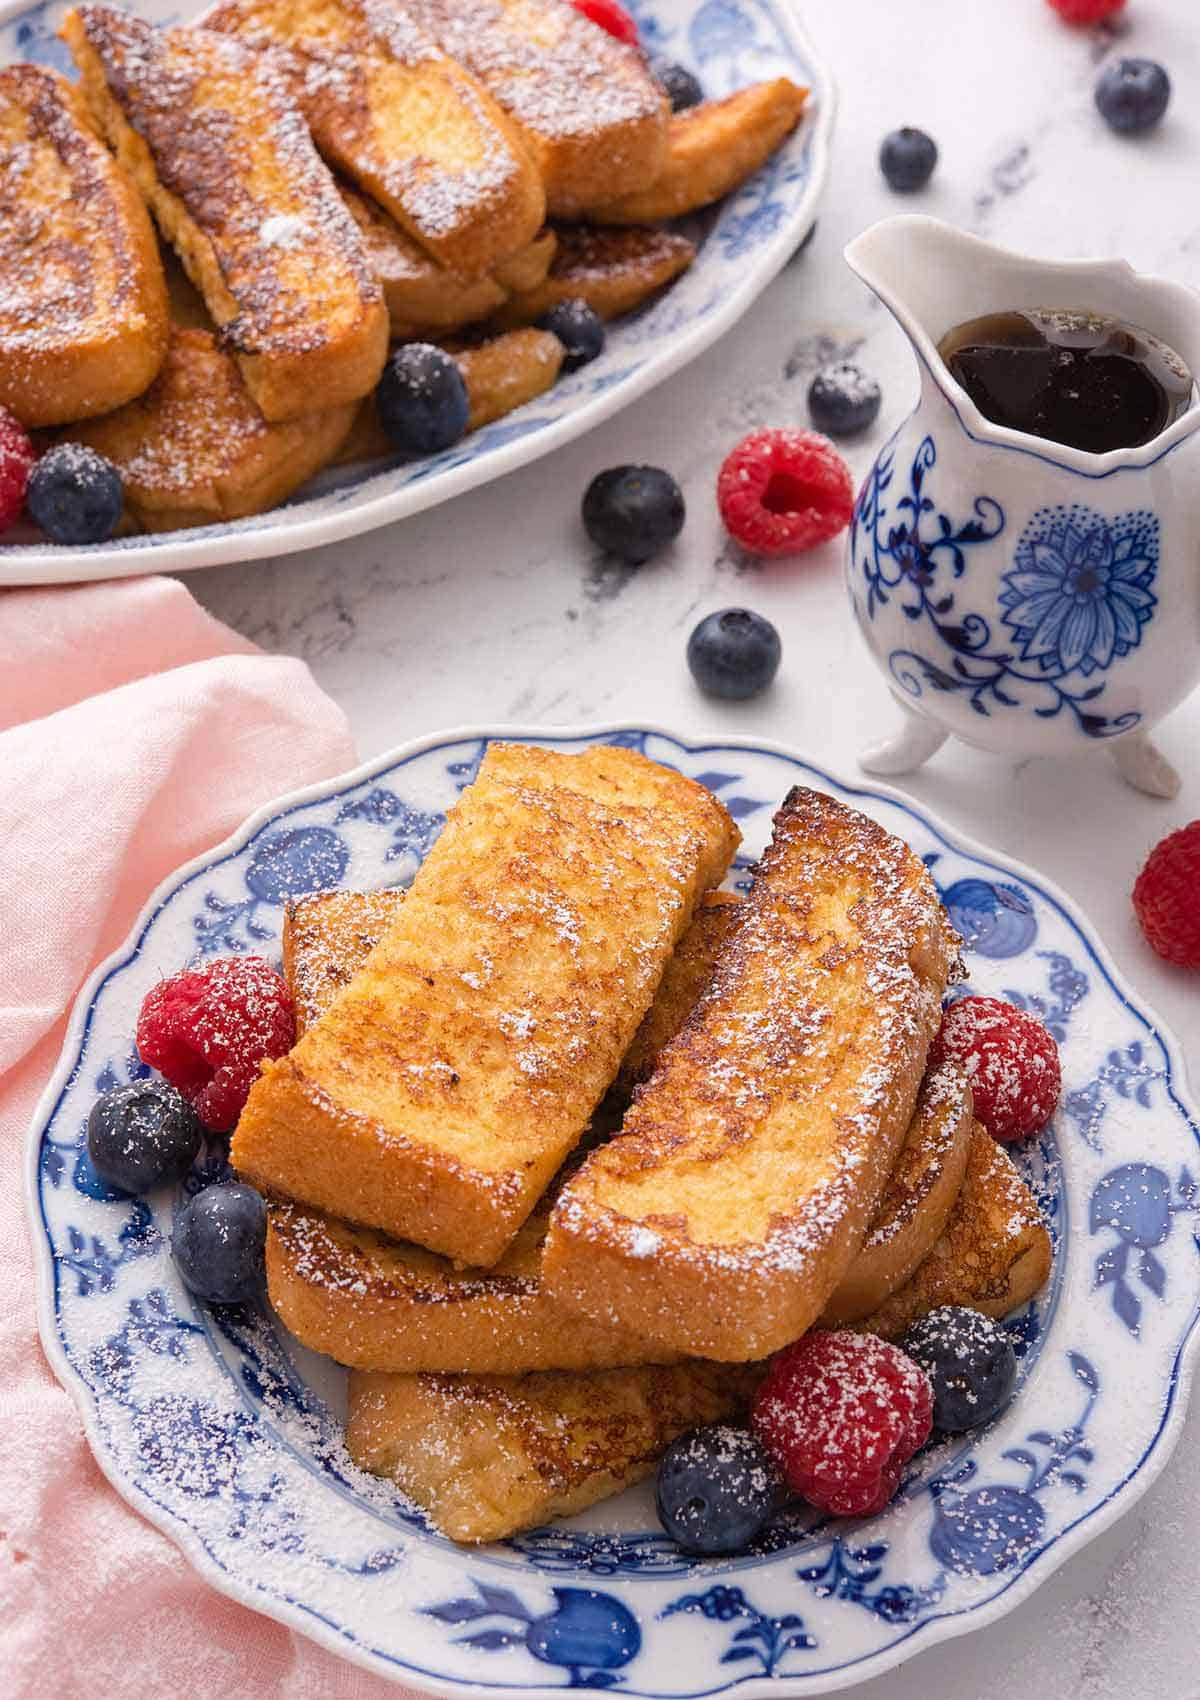 A plate of French toast sticks with powdered sugar on top and fresh berries around it. A serving platter with more is in the background along with syrup.